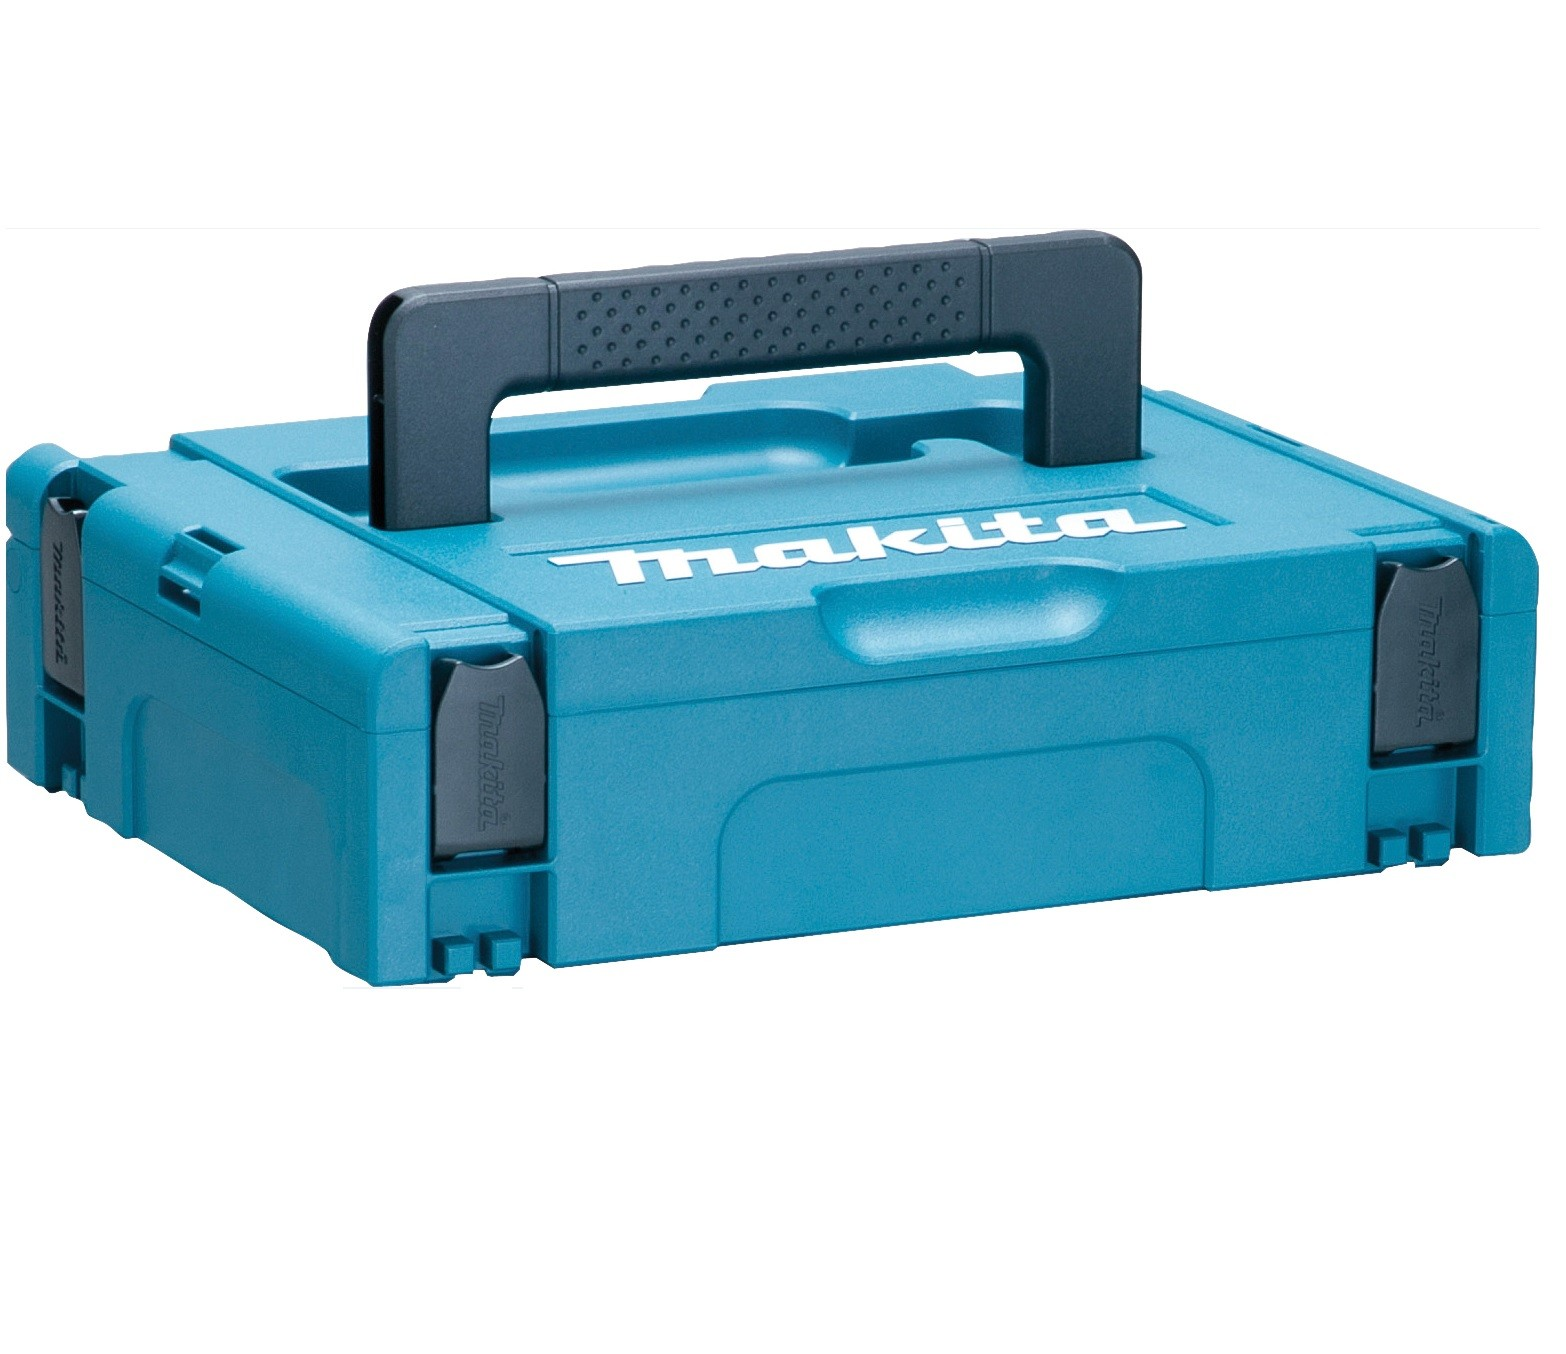 Makita 821549-5 Makpac Connector Stacking Case Type 1 (No Inlay)